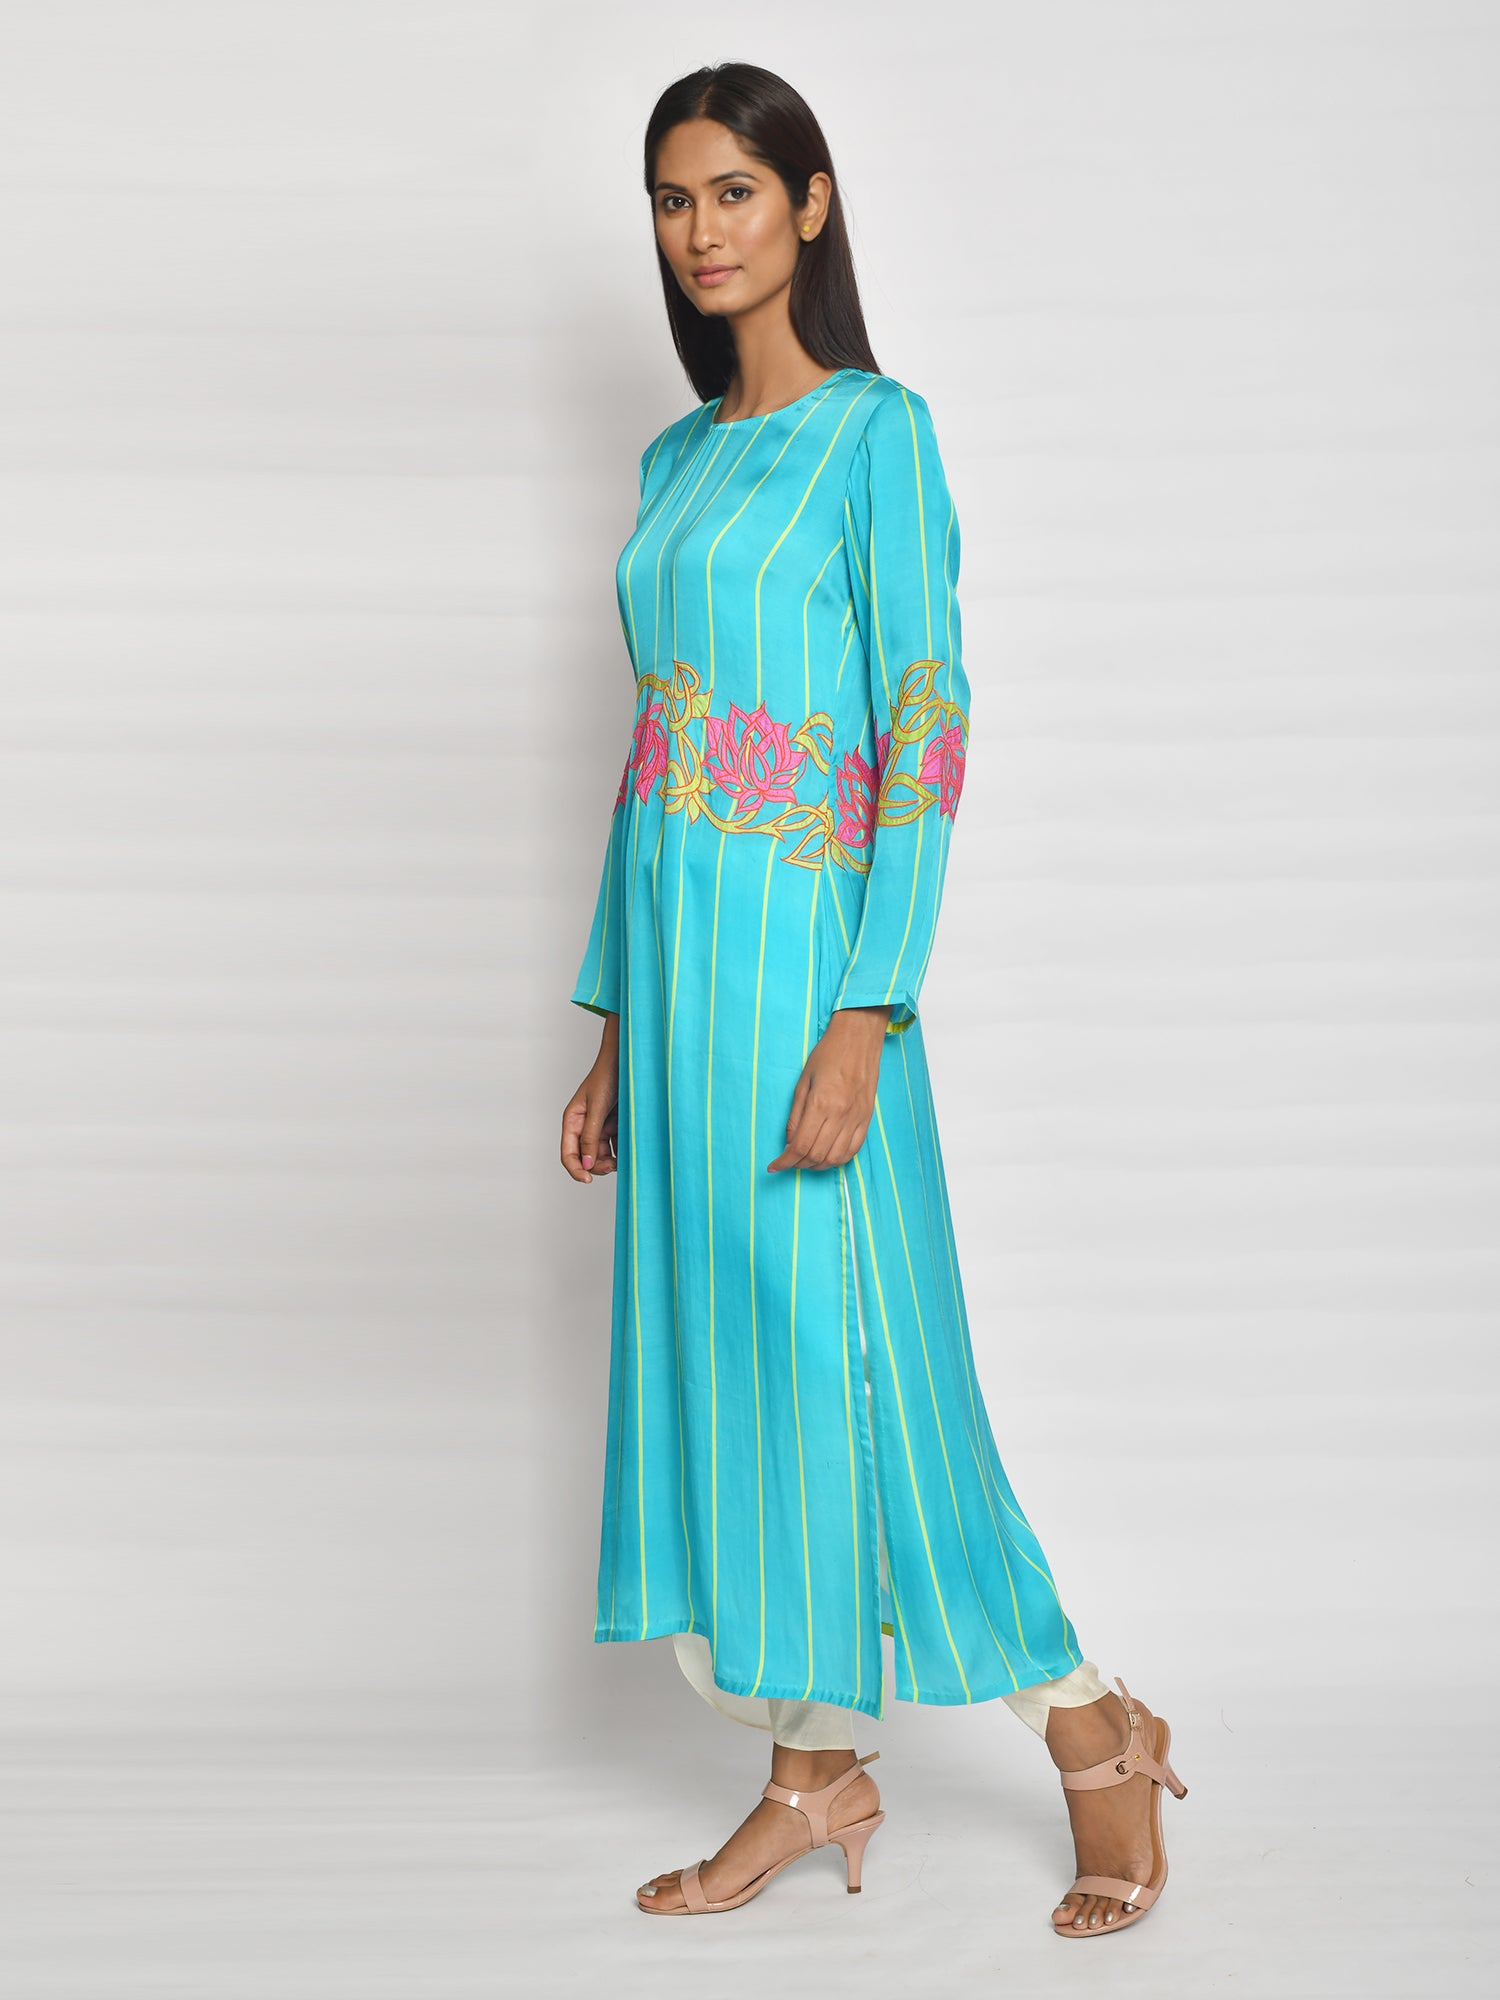 kurtas, kurtasets, embroidered, teal, turquoise, indianapparel, womenswear, traditional, fashionstyle, indianfashion, contemporaryindianwear